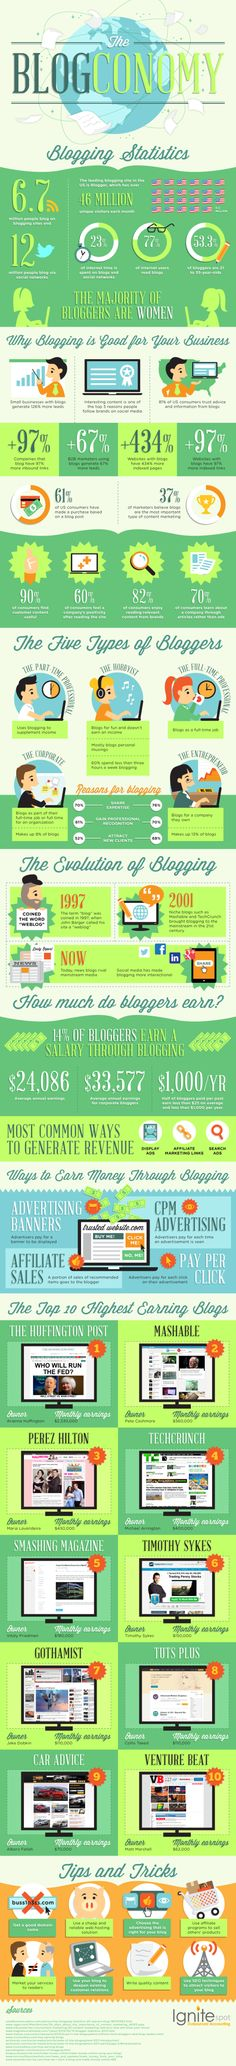 The Blogconomy #infographic